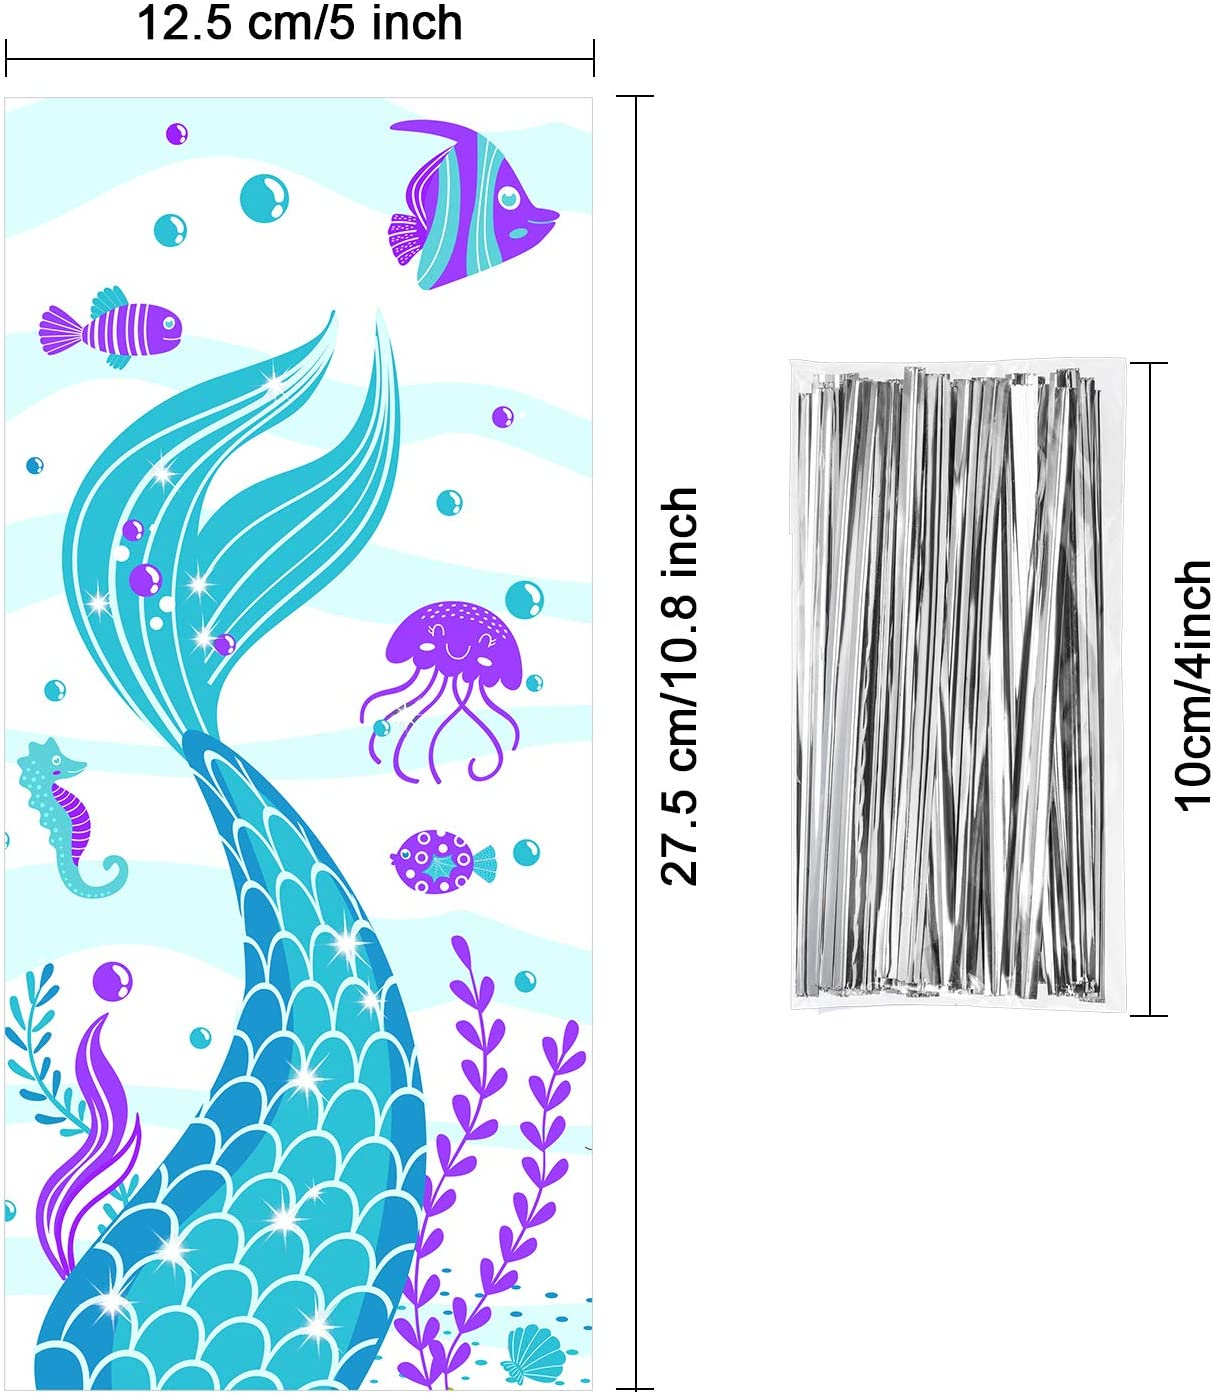 100 Pieces Plastic Mermaid Birthday Party Treat Bags Cellophane Clear Mermaid Tail Theme Cookie Candy Goodie Bags with 100 Silver Twist Ties for Under the Sea Little Mermaid Birthday Party Supplies